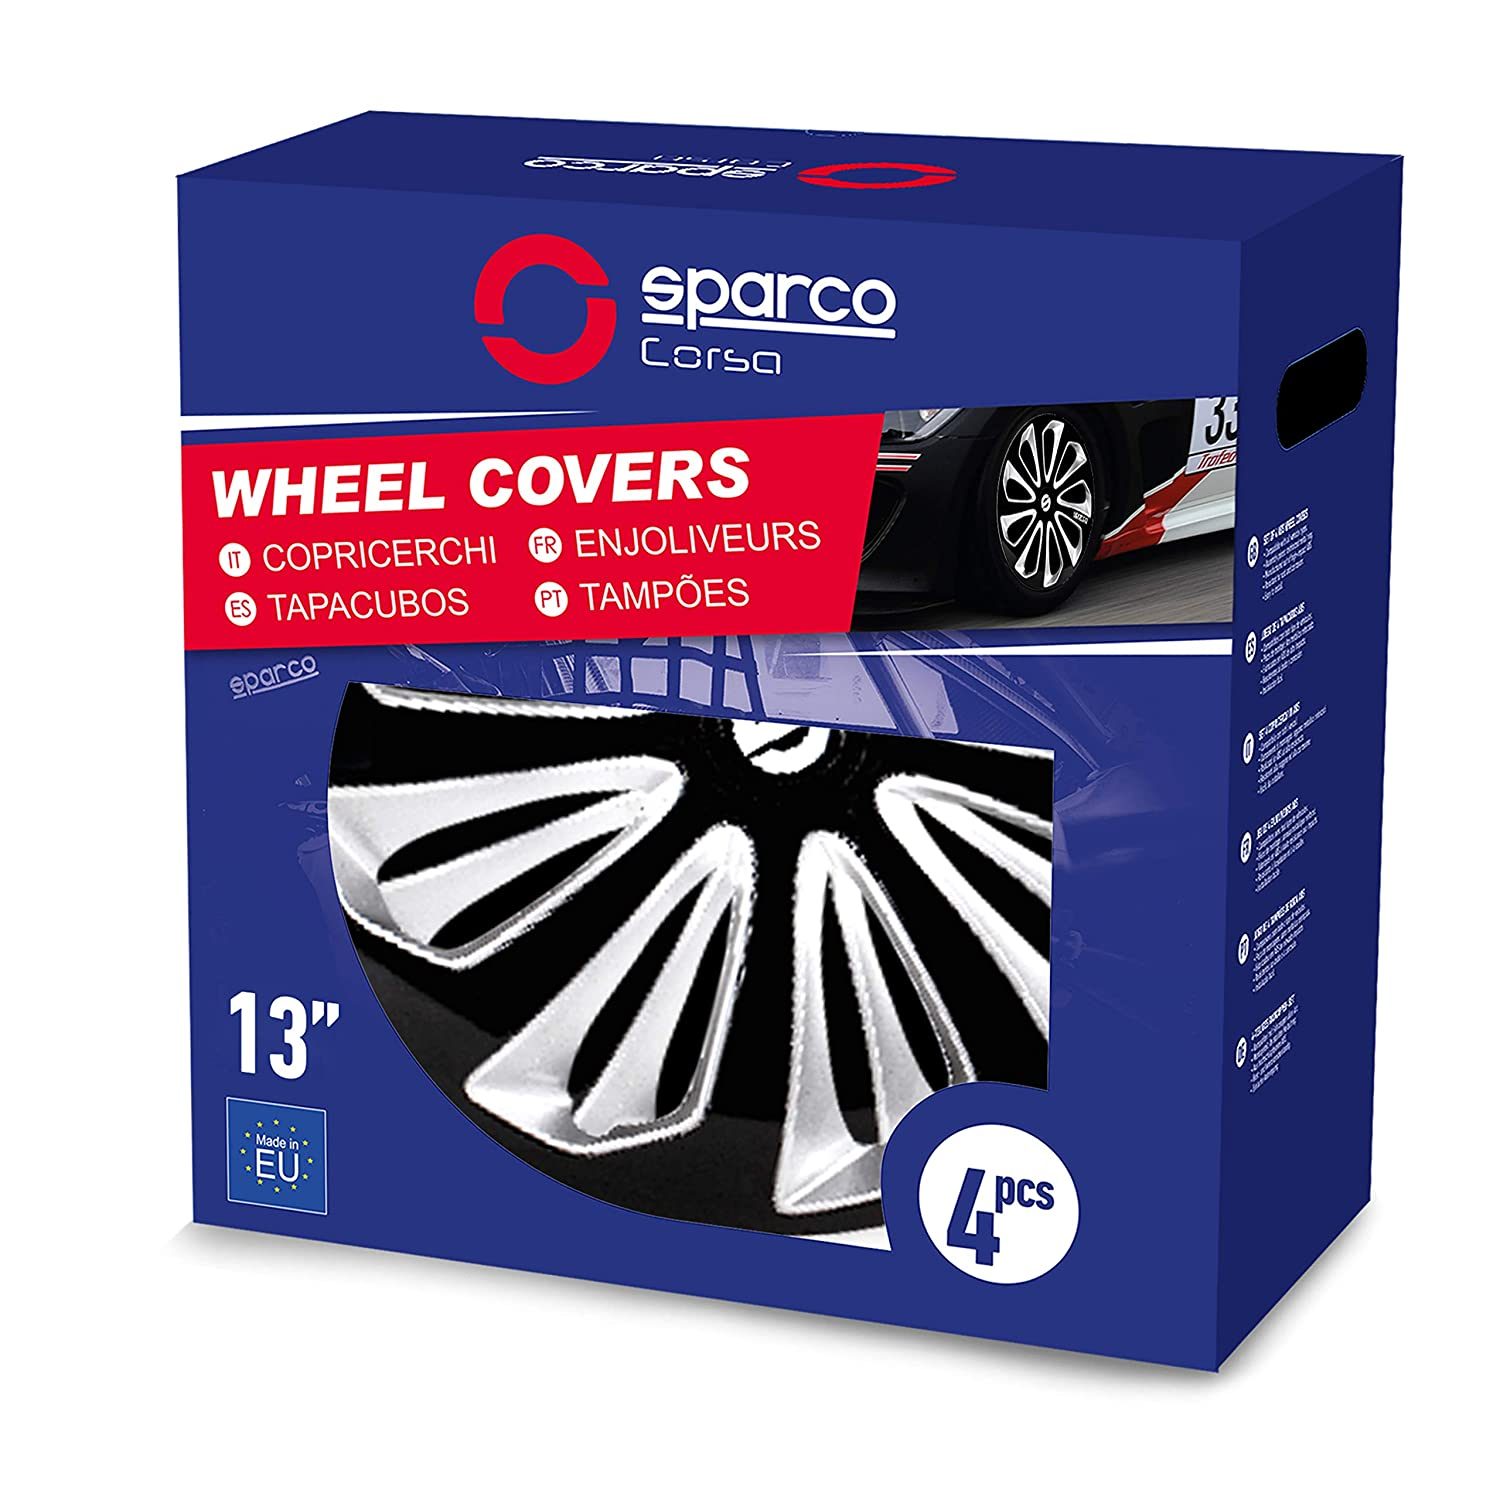 Amazon.com: Sparco SPC1673BKSV Sicilia Wheel Covers, Black/Silver, Set of 4, 16